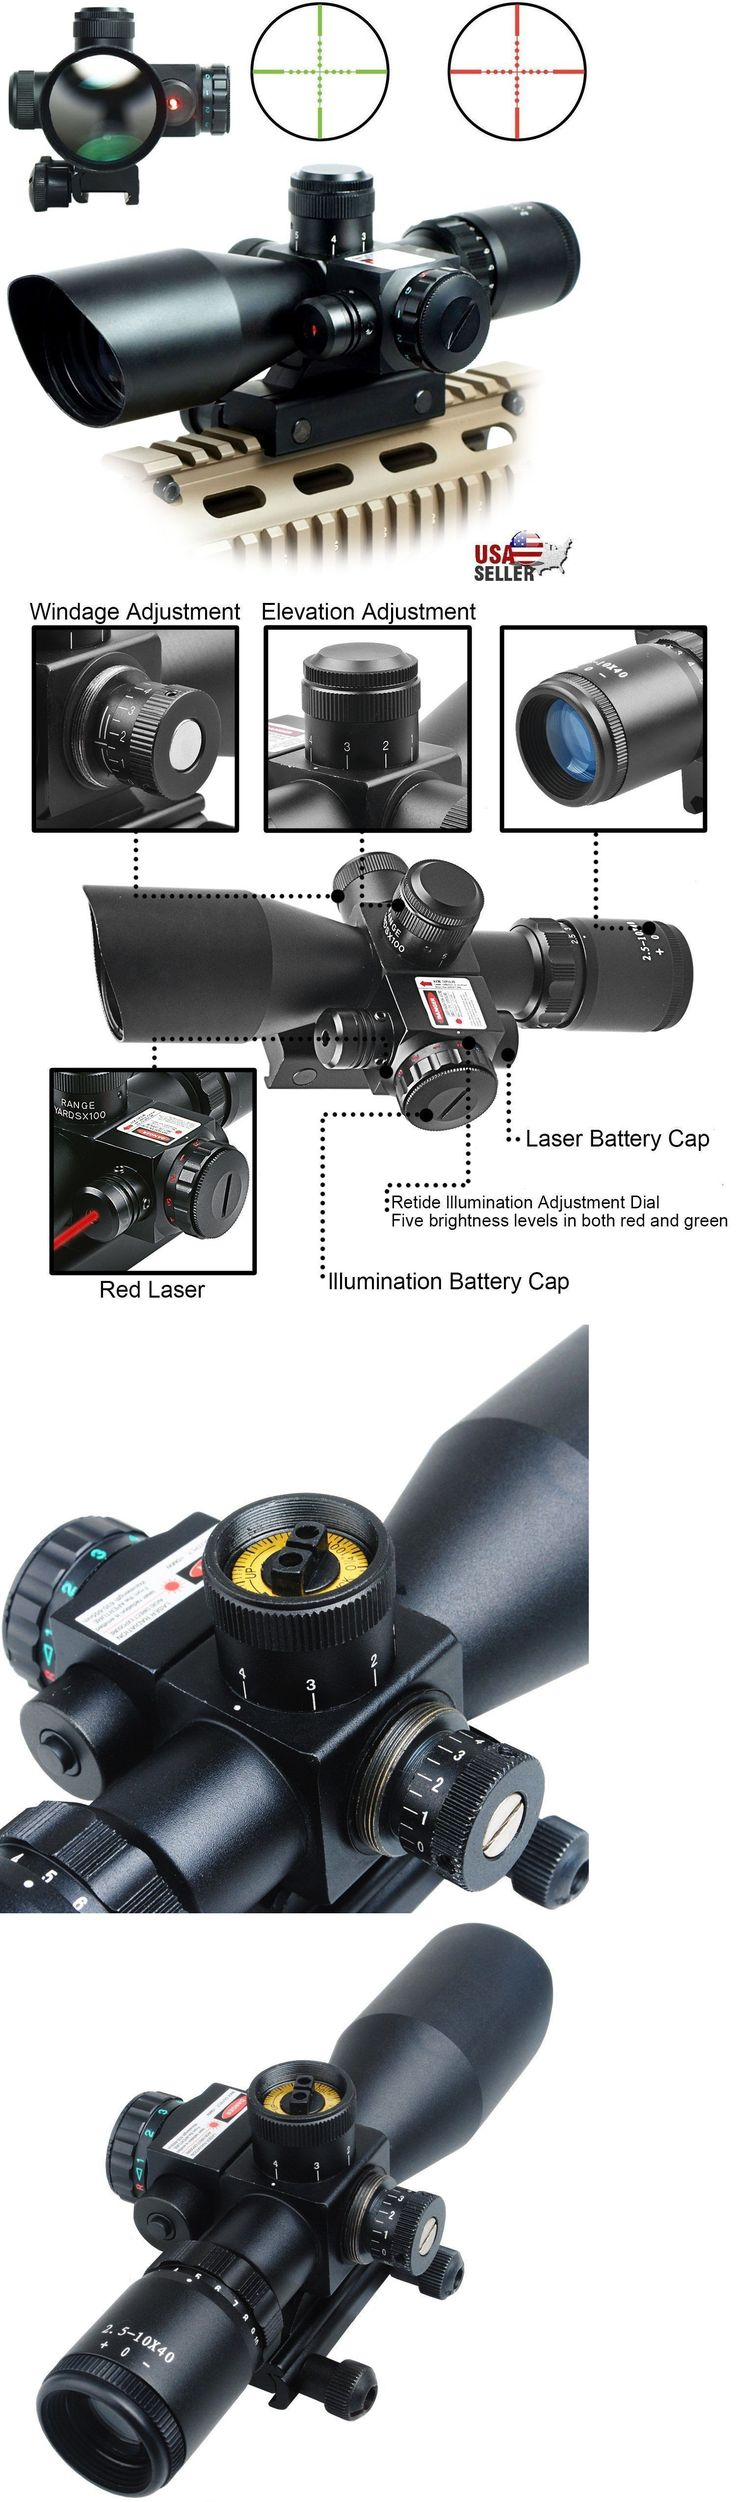 Rifle Scopes 31714: 2.5-10X40 Tactical Rifle Scope Red Green Mil-Dot Illuminated Red Laser Mount -> BUY IT NOW ONLY: $39.5 on eBay!